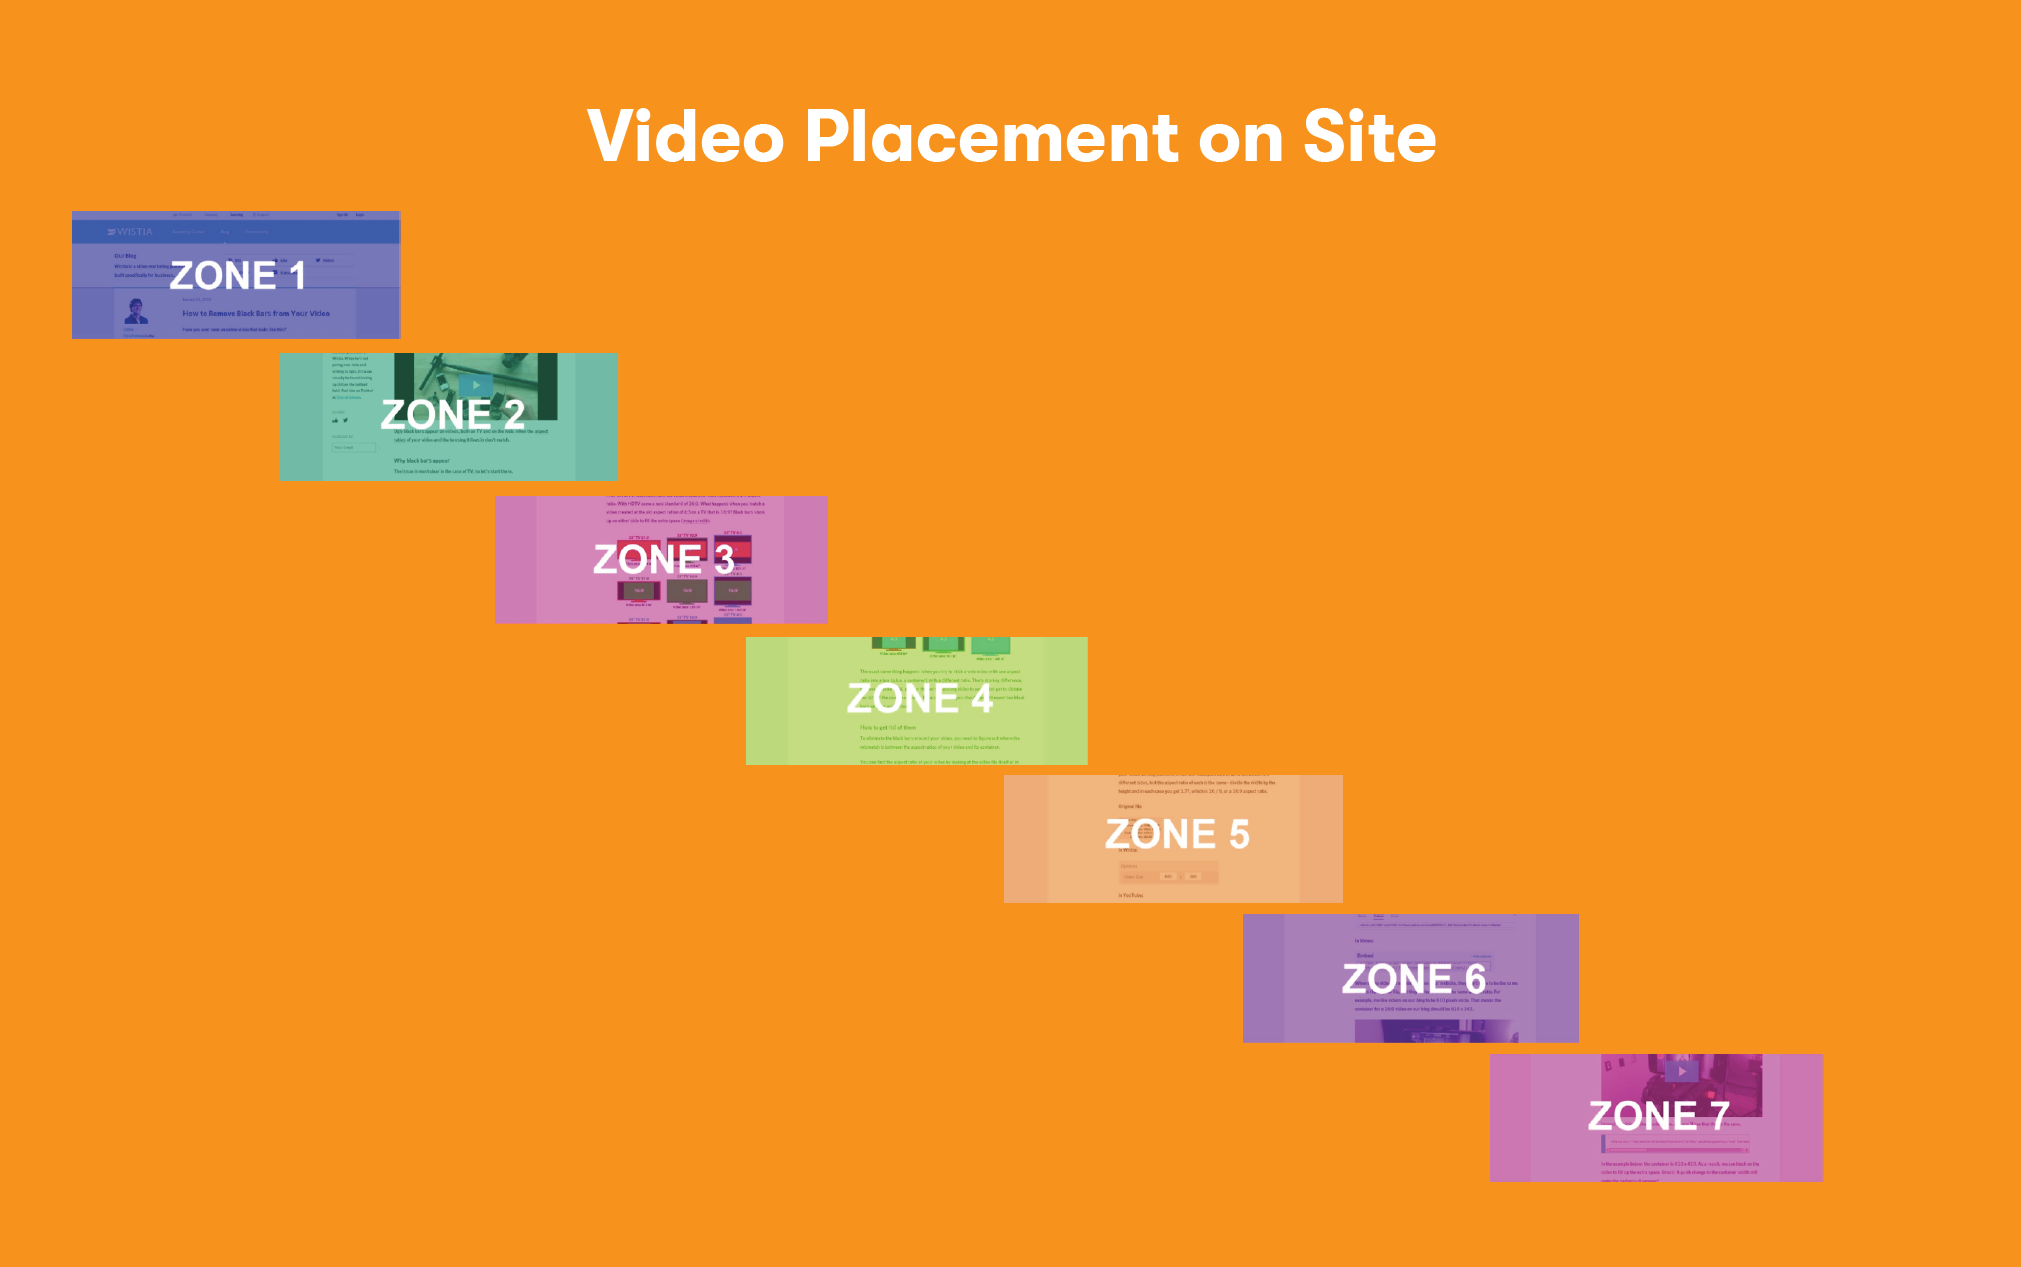 Video Placement on Site